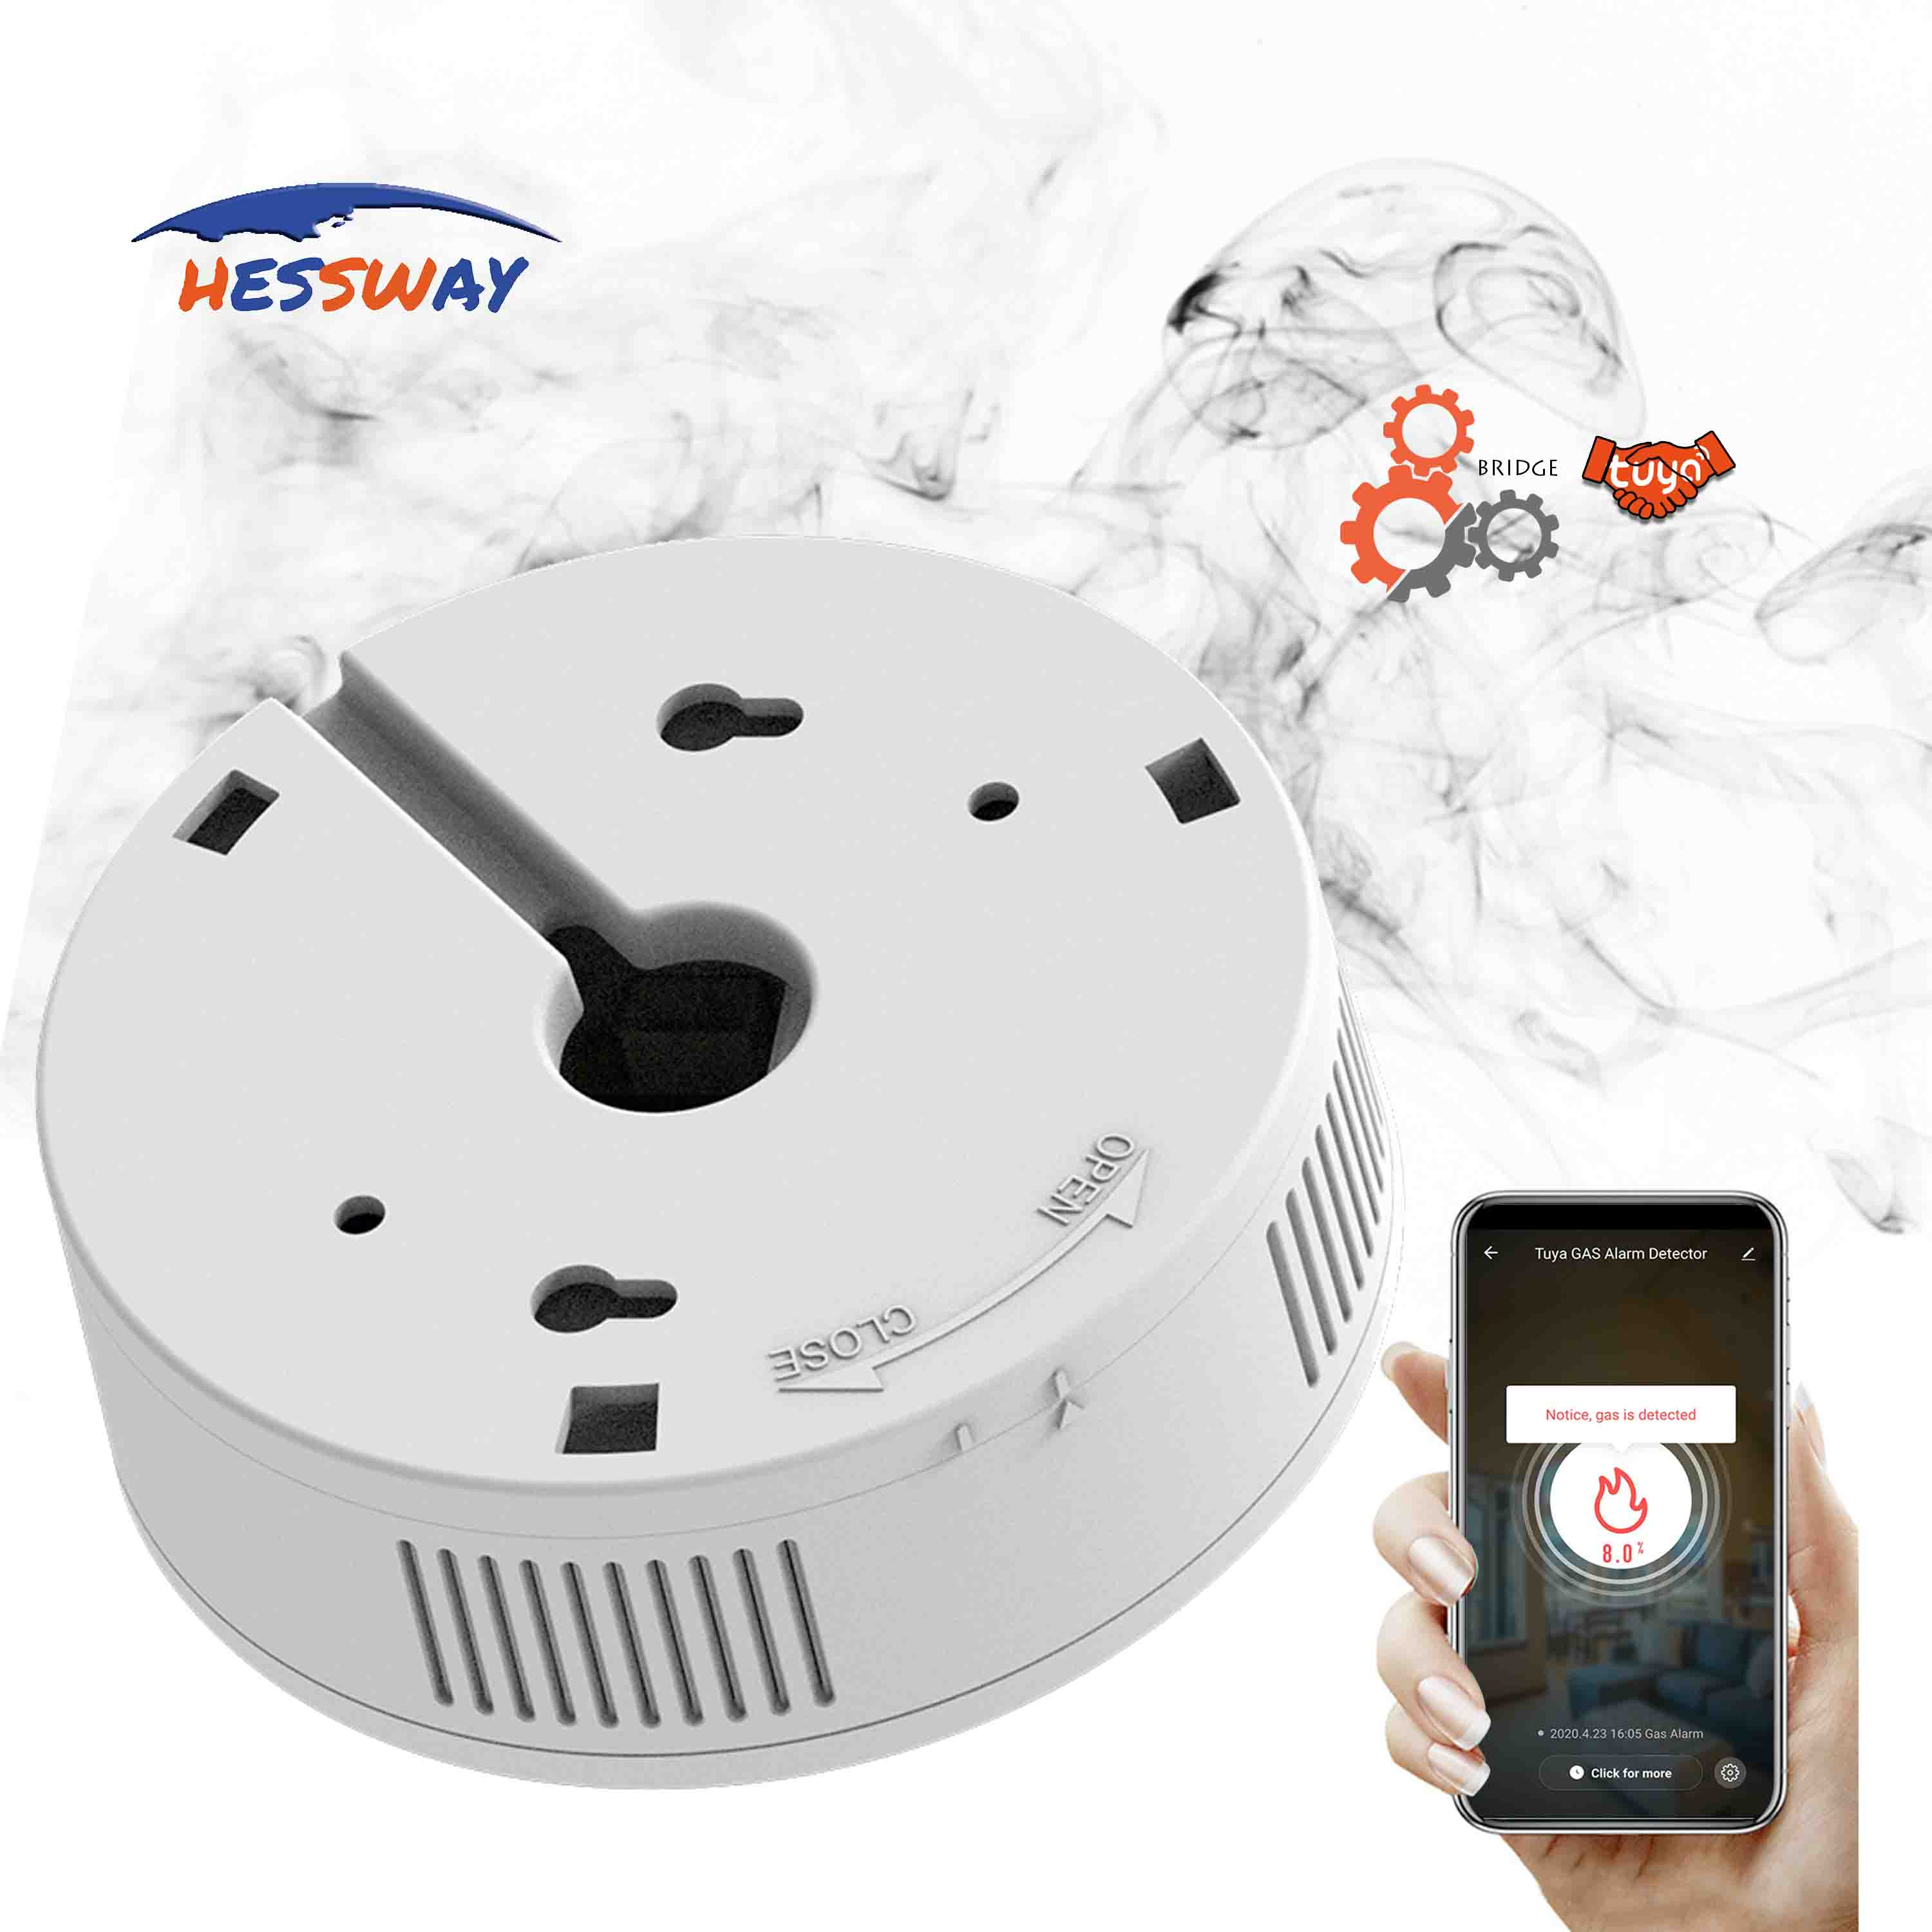 Top SaleÉGas-Detector Alarm Natural for Concentration 8%Leakage 80db Safety-Valve Switching 5V